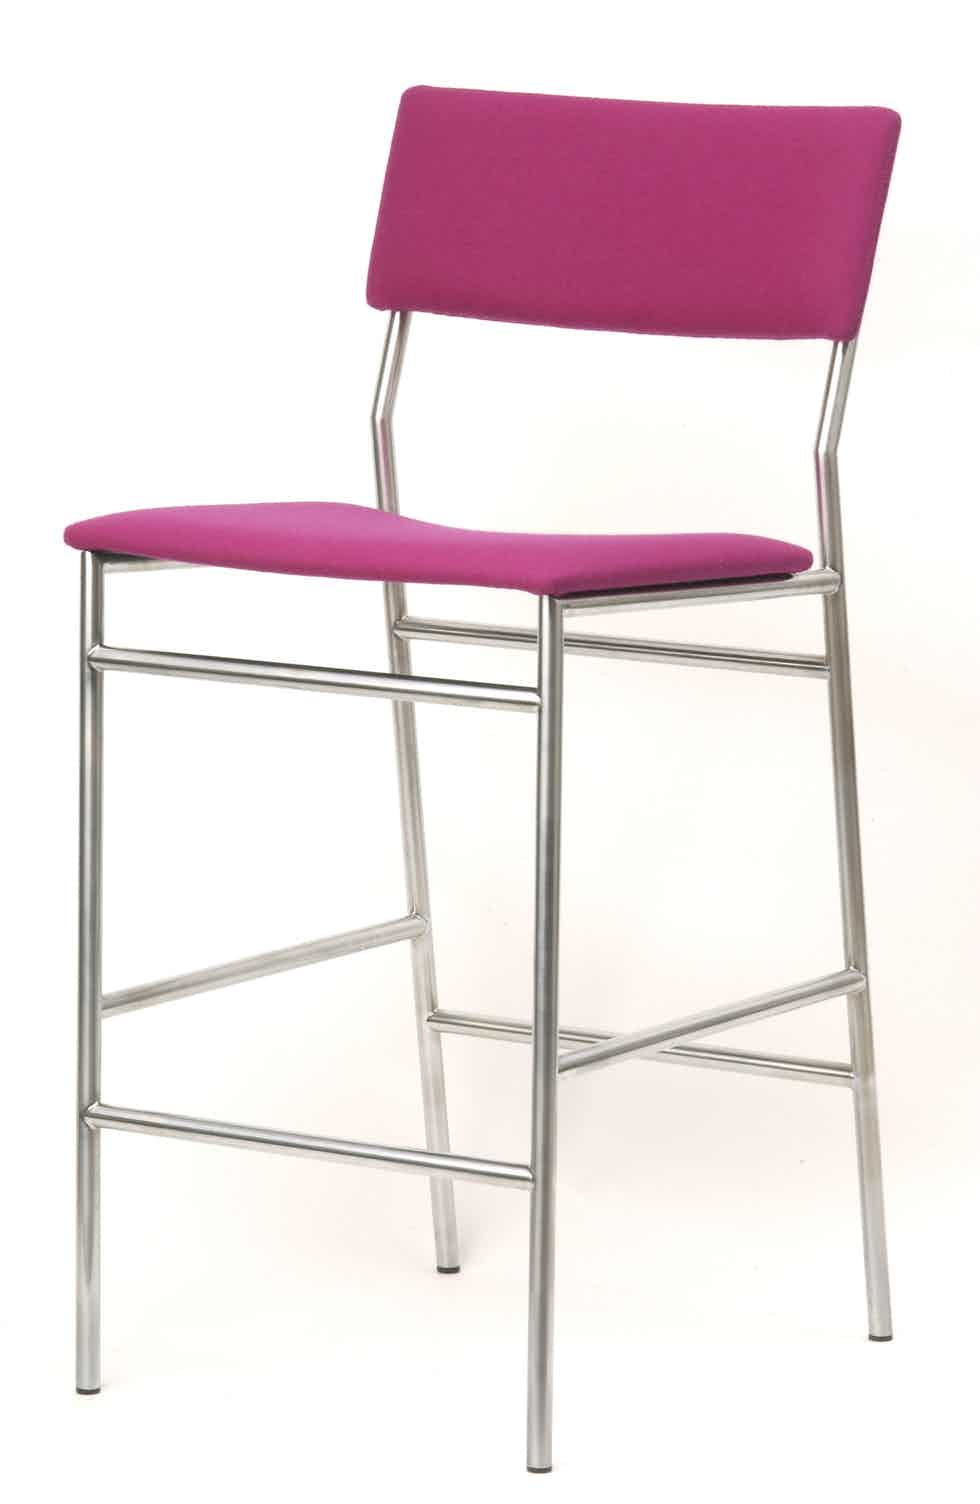 Spectrum Furniture 07 Xl Pink Sb Bar Stool